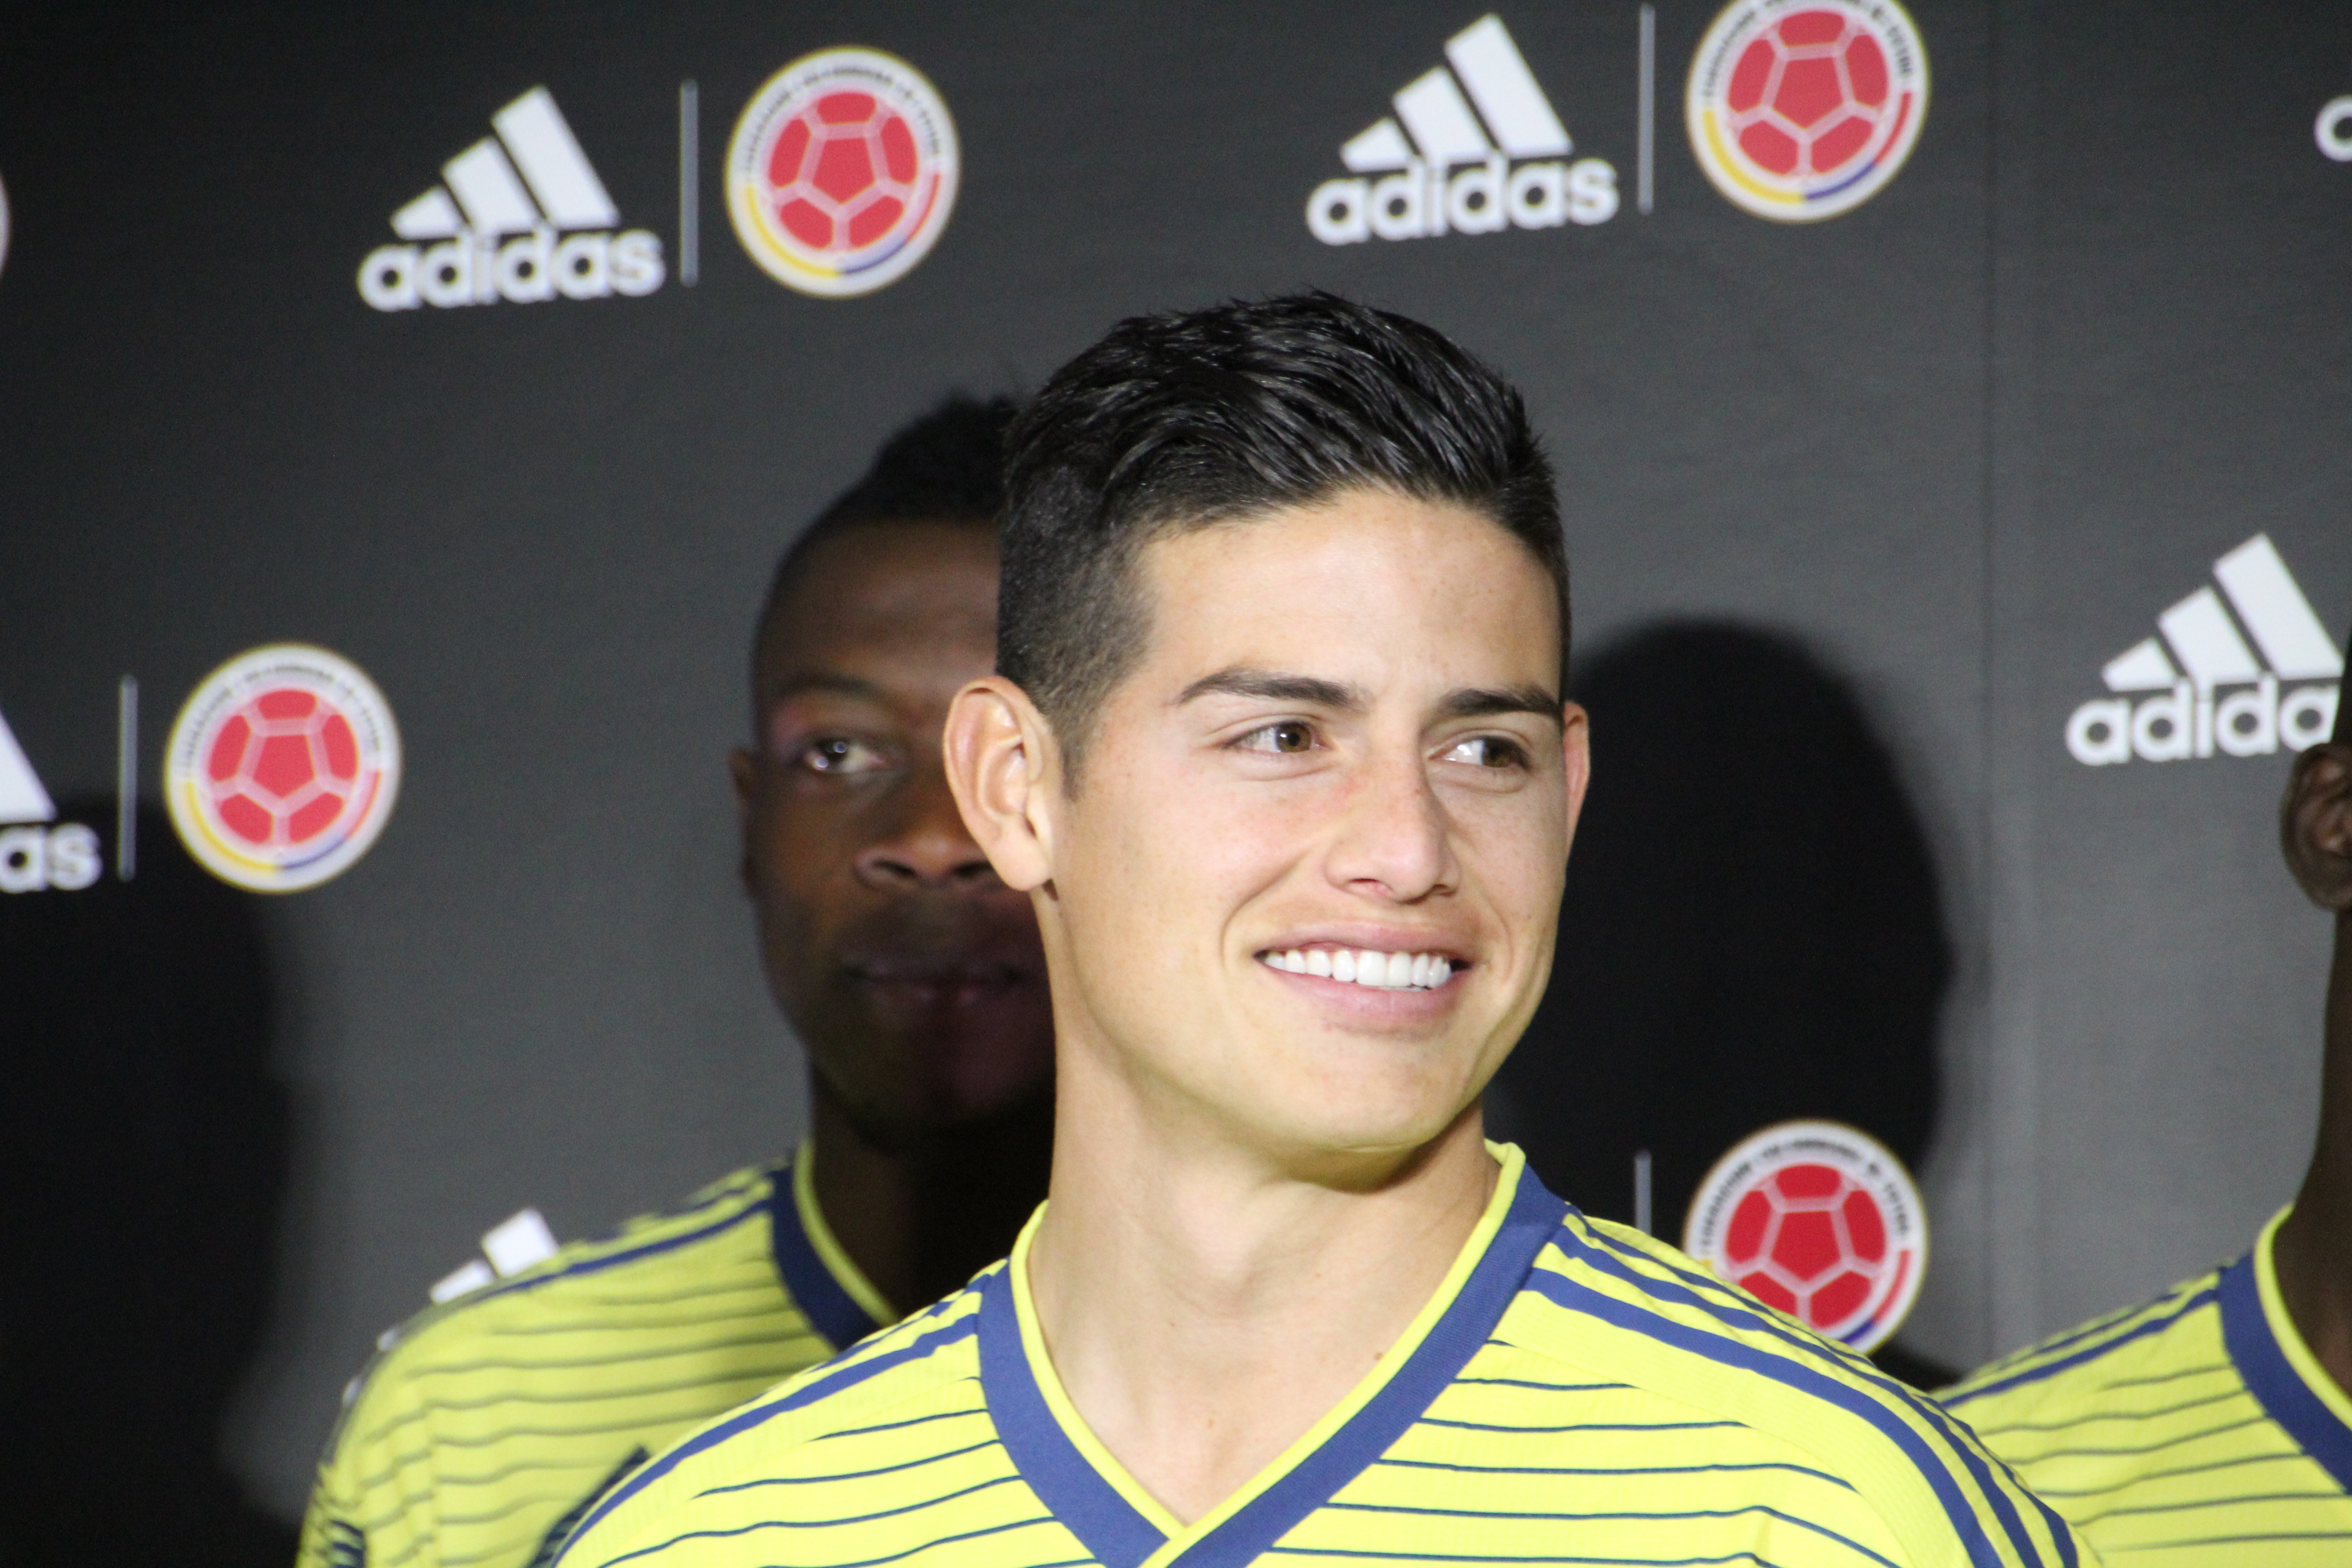 Colombia 2019, La Sele, James, Falcao